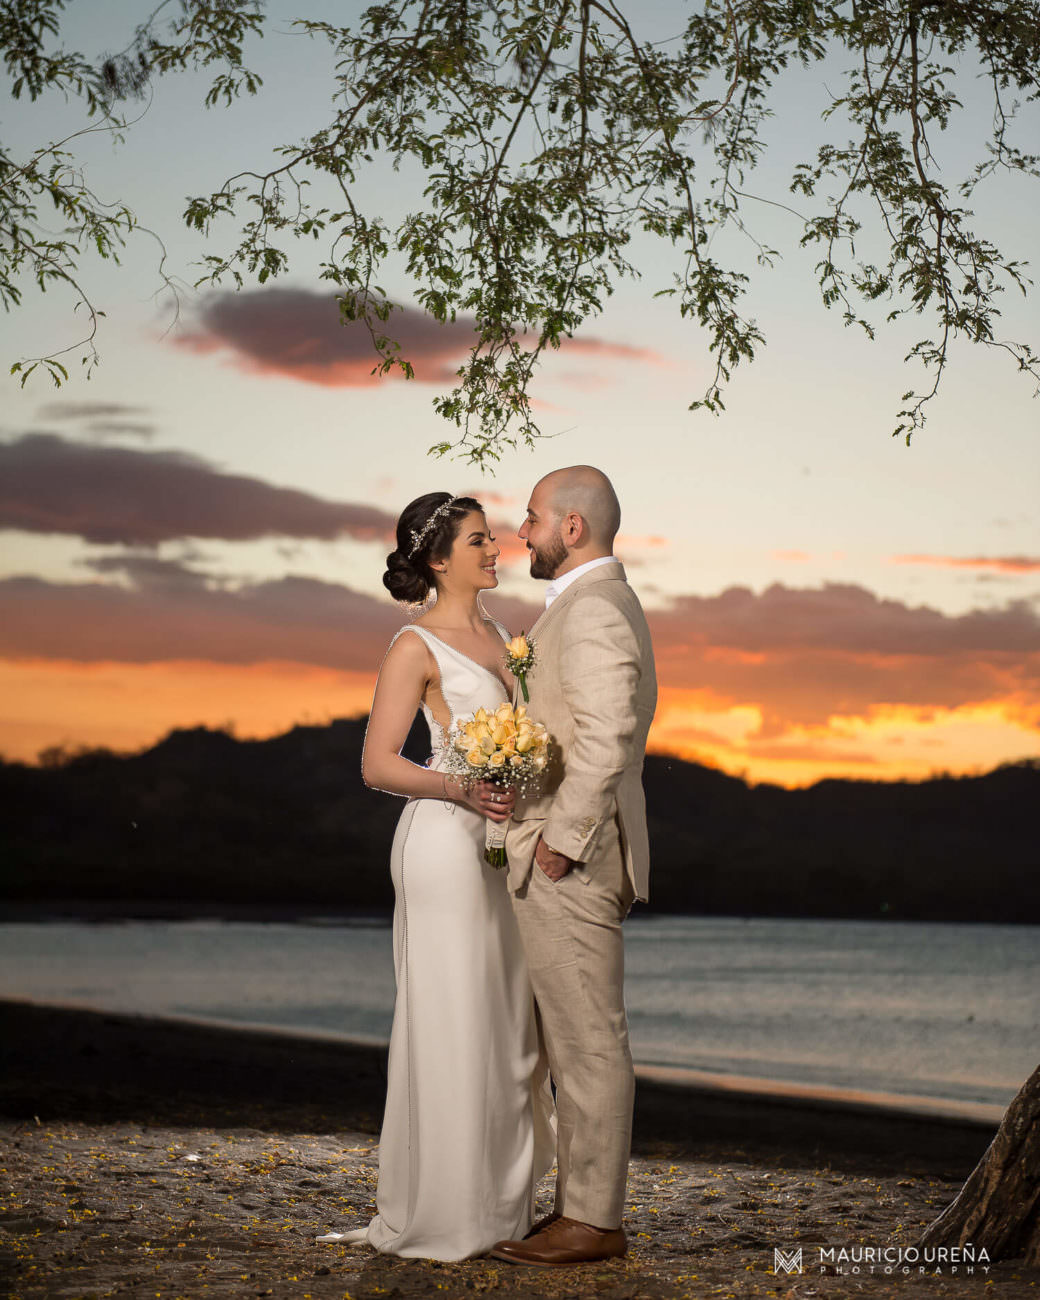 El Mangroove Beach Wedding | Costa Rica Destination Wedding Photographer | Sunset Portrait of Bride & Groom